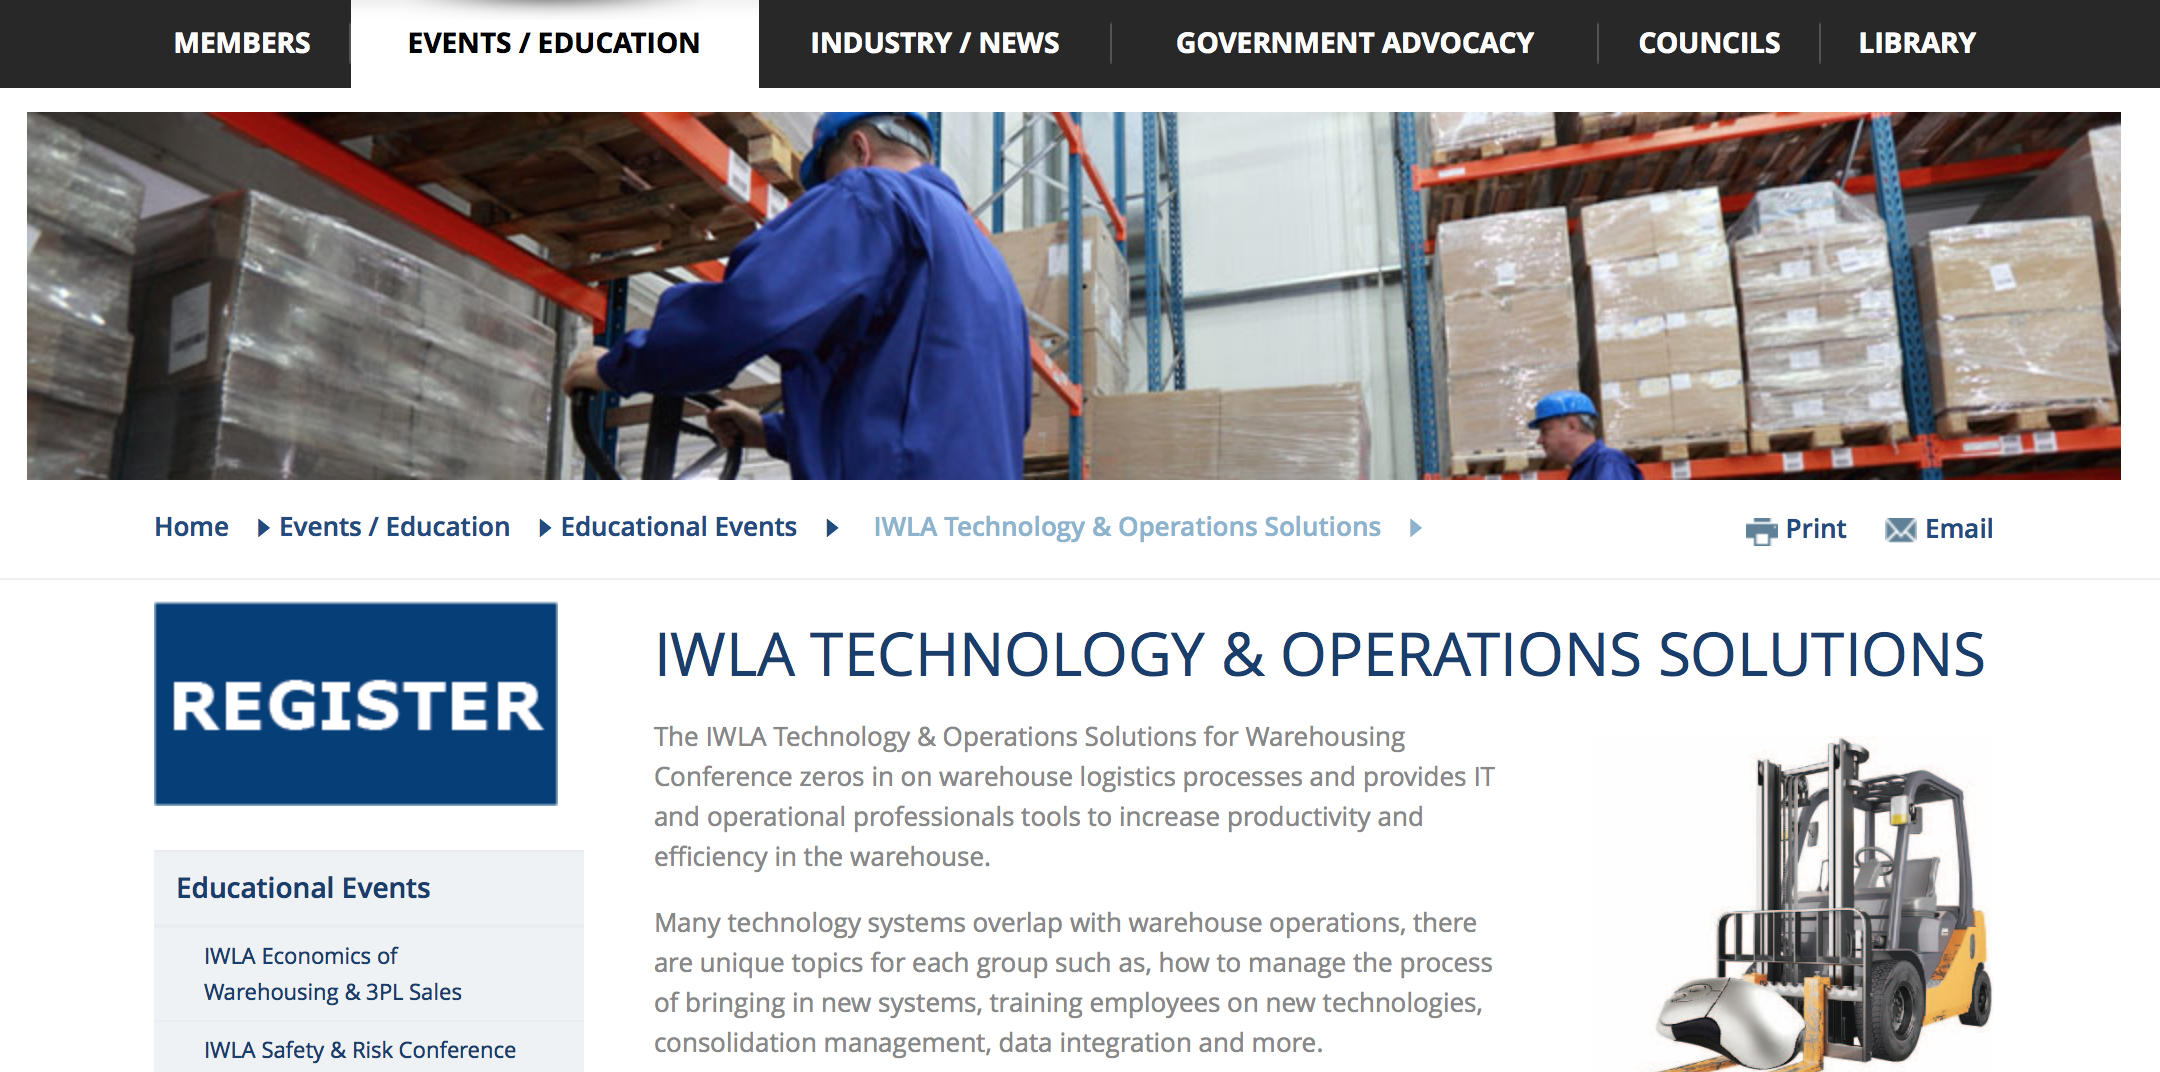 iwla-technology-and-operations-solutions-for-warehousing-conference